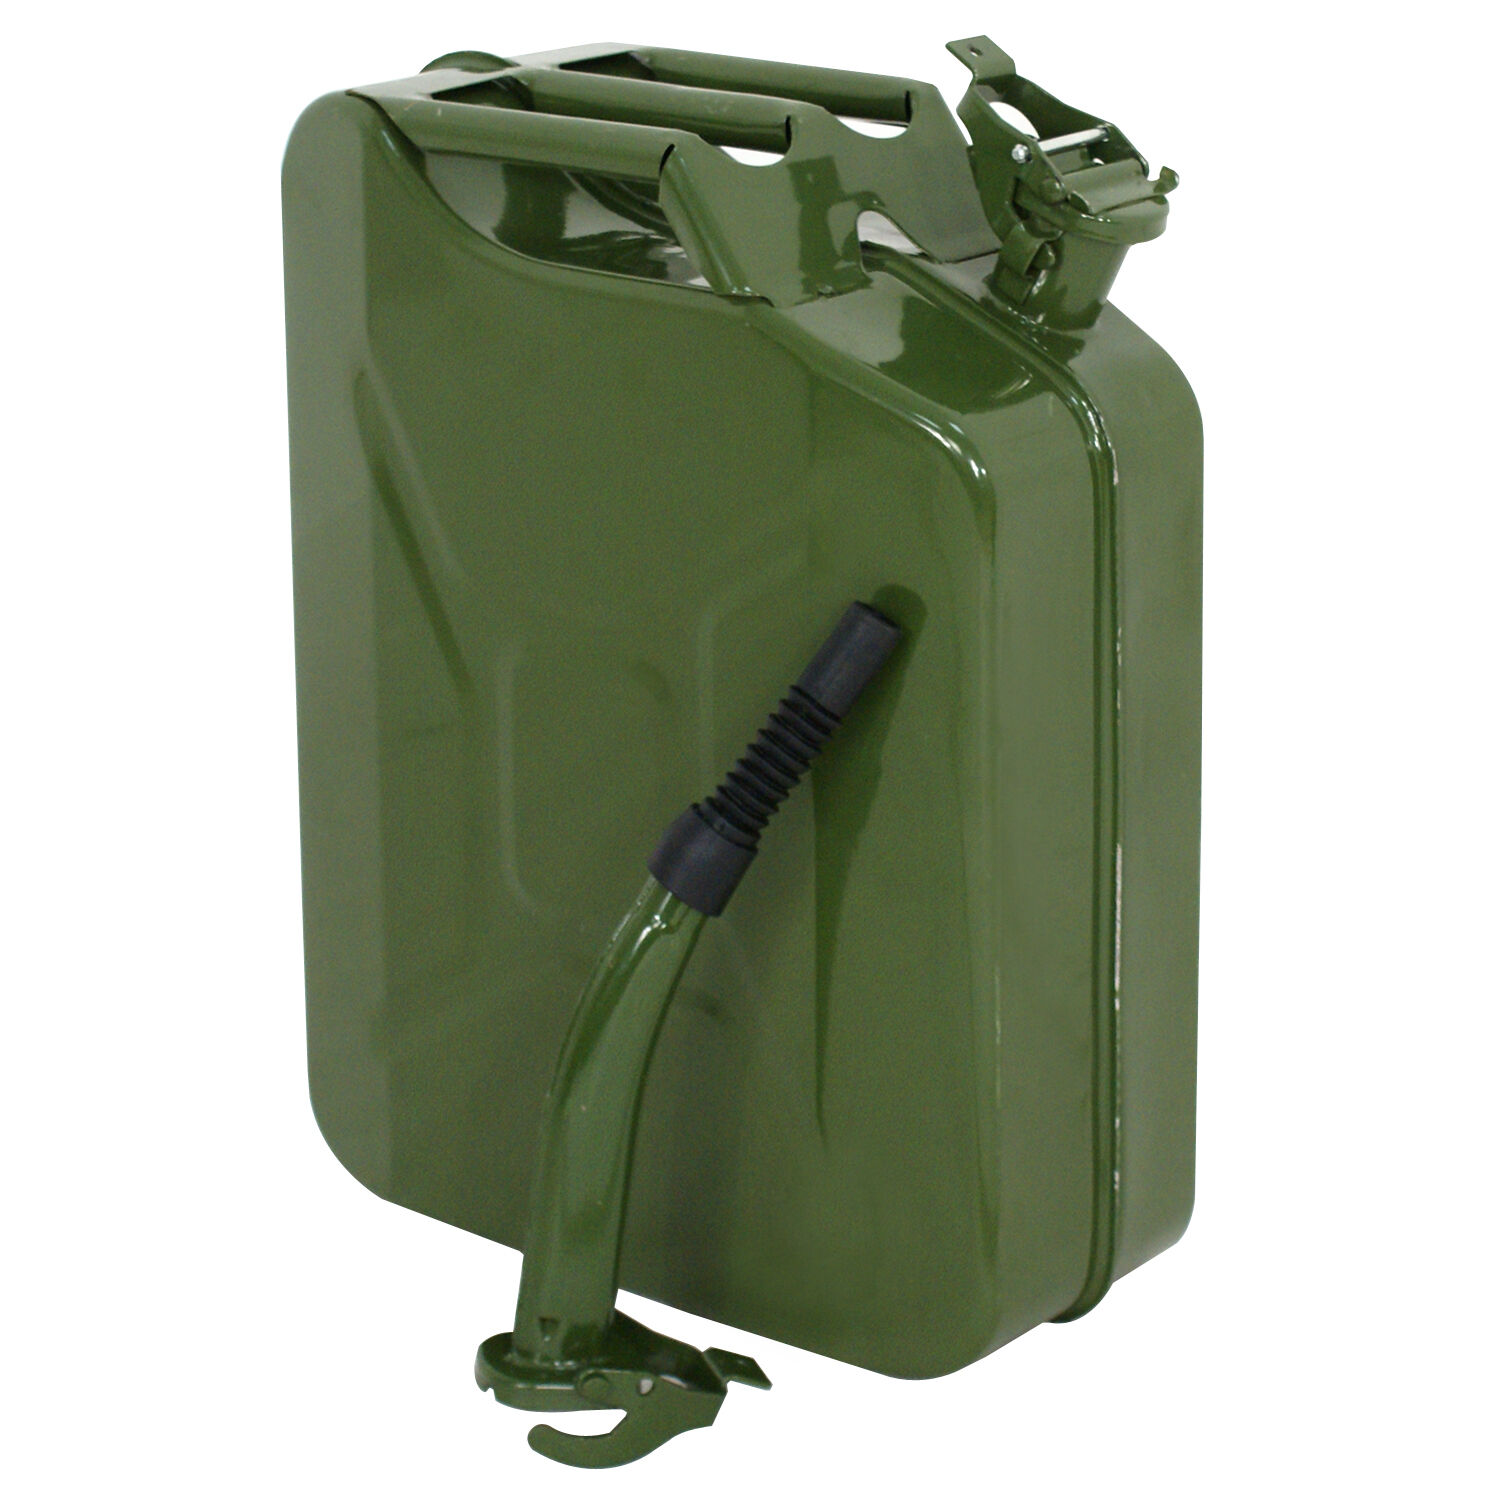 Green 20L Liter (5 Gallon Gal) Jerry Can Backup Steel Tank Fuel Gas Gasoline Business & Industrial